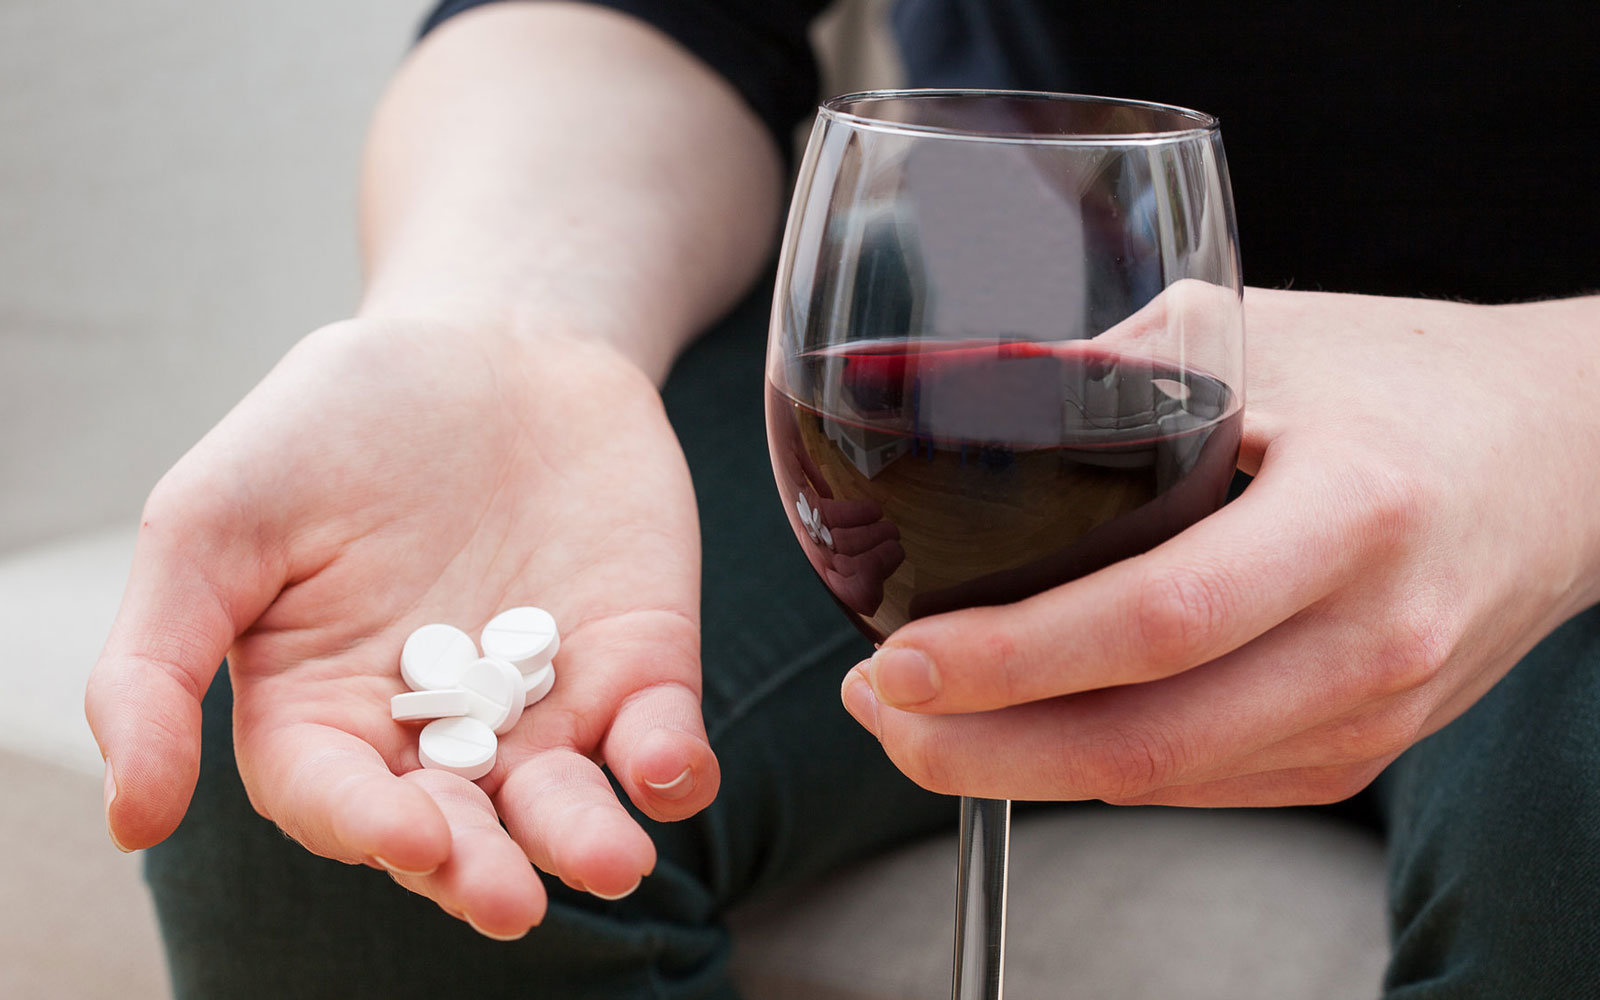 How Bad Is It to Have a Drink While on Antibiotics?